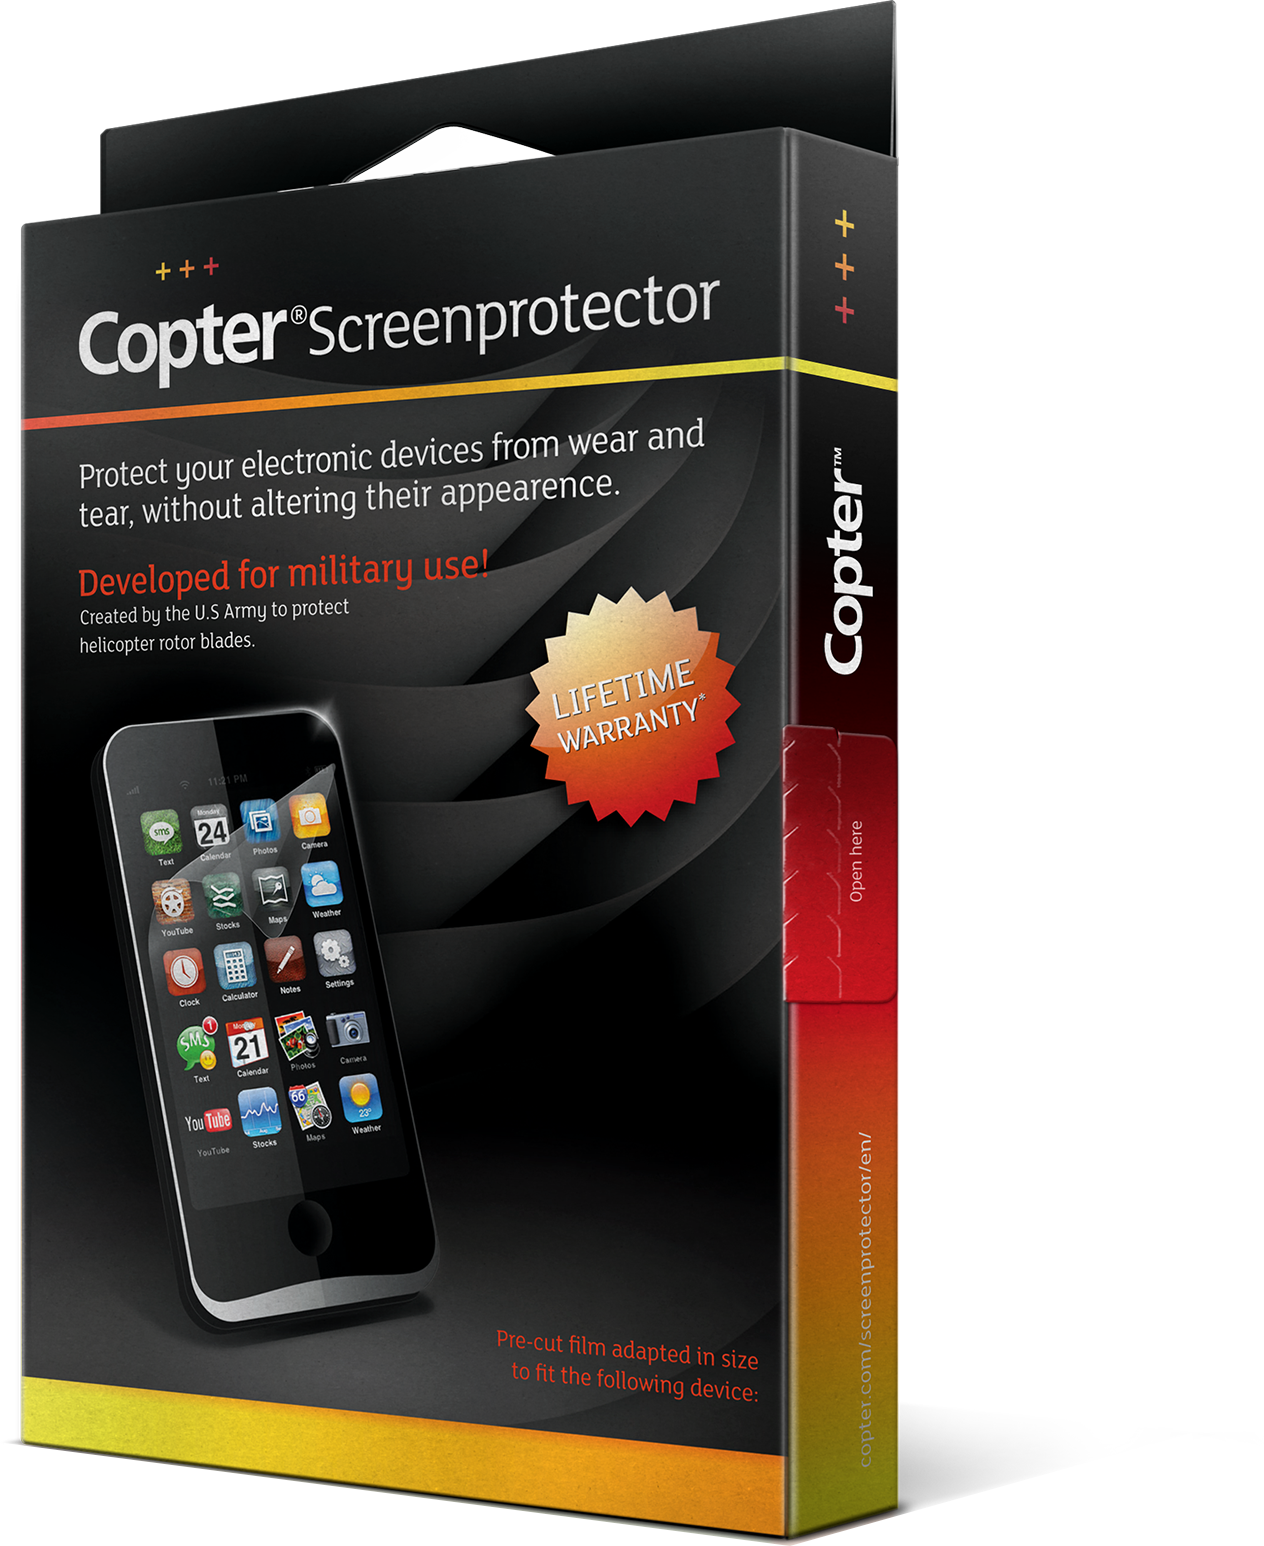 Läs mer om Copter Screenprotector LG G3